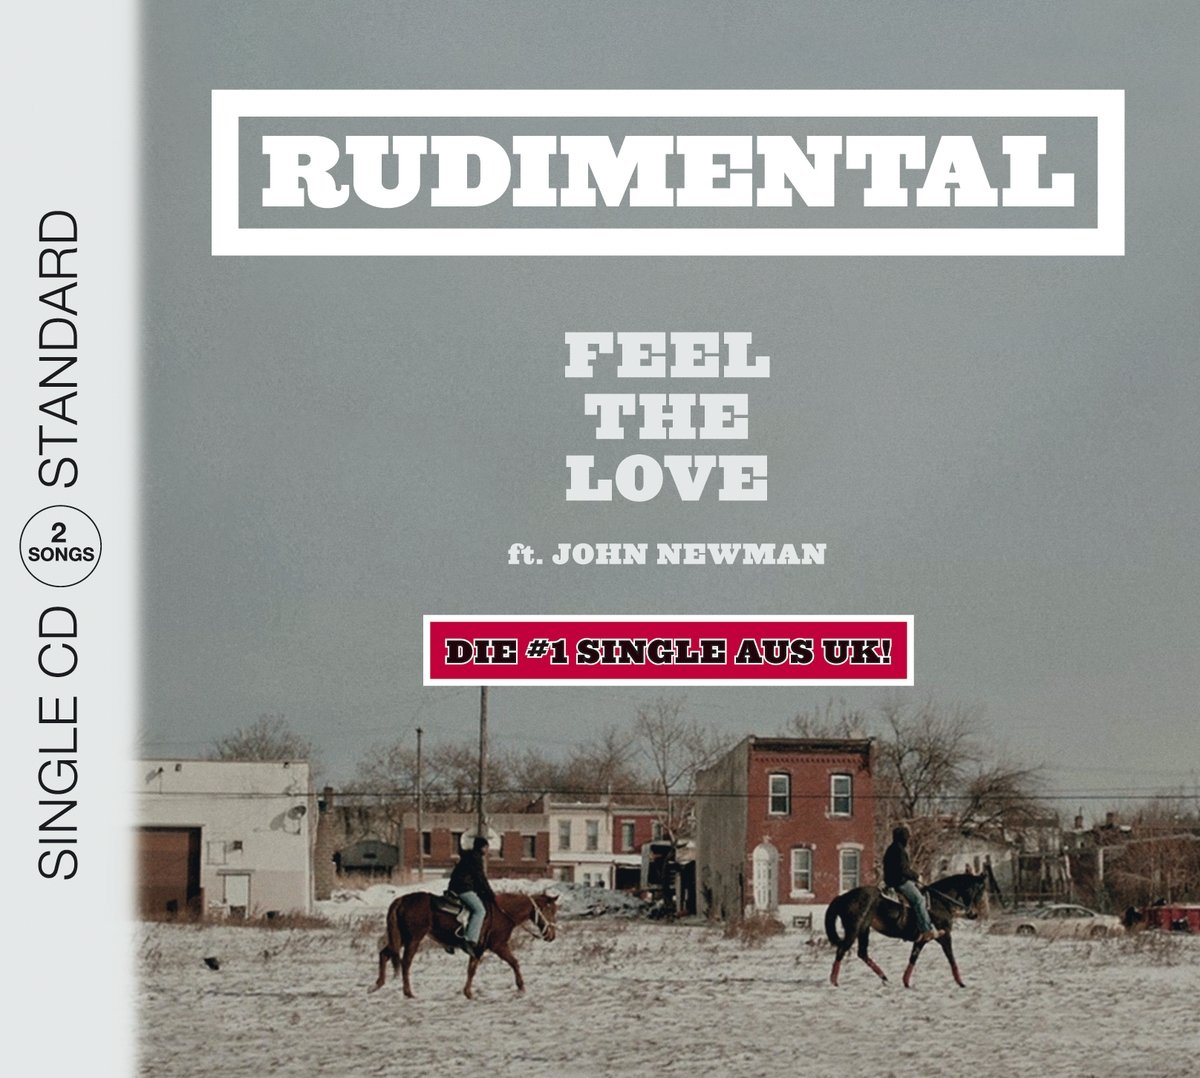 Feel the love (feat. John newman) | rudimental – download and.